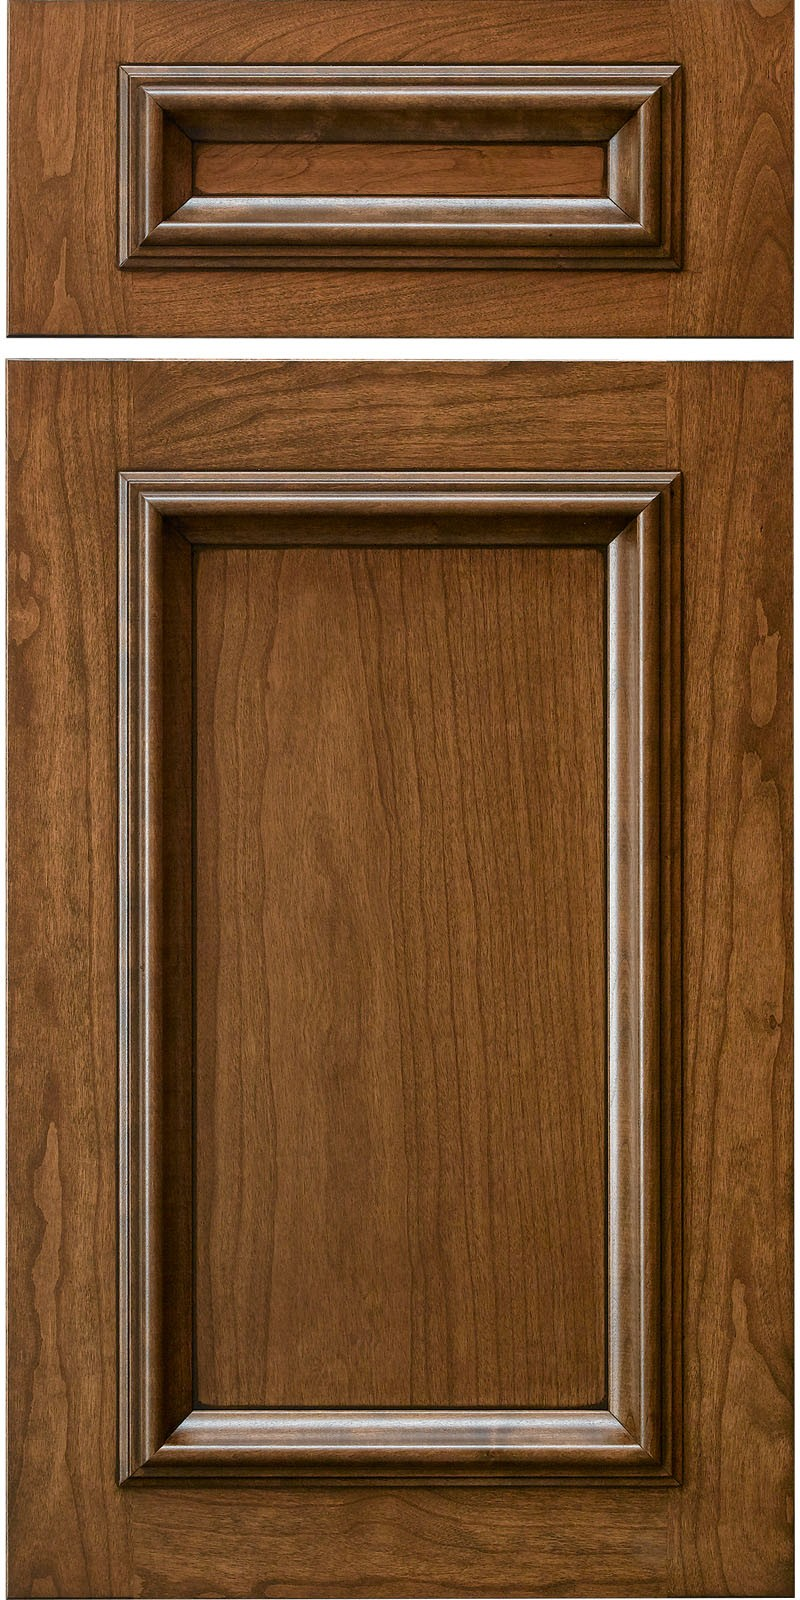 Tw101486 Plywood Panel Materials Cabinet Doors